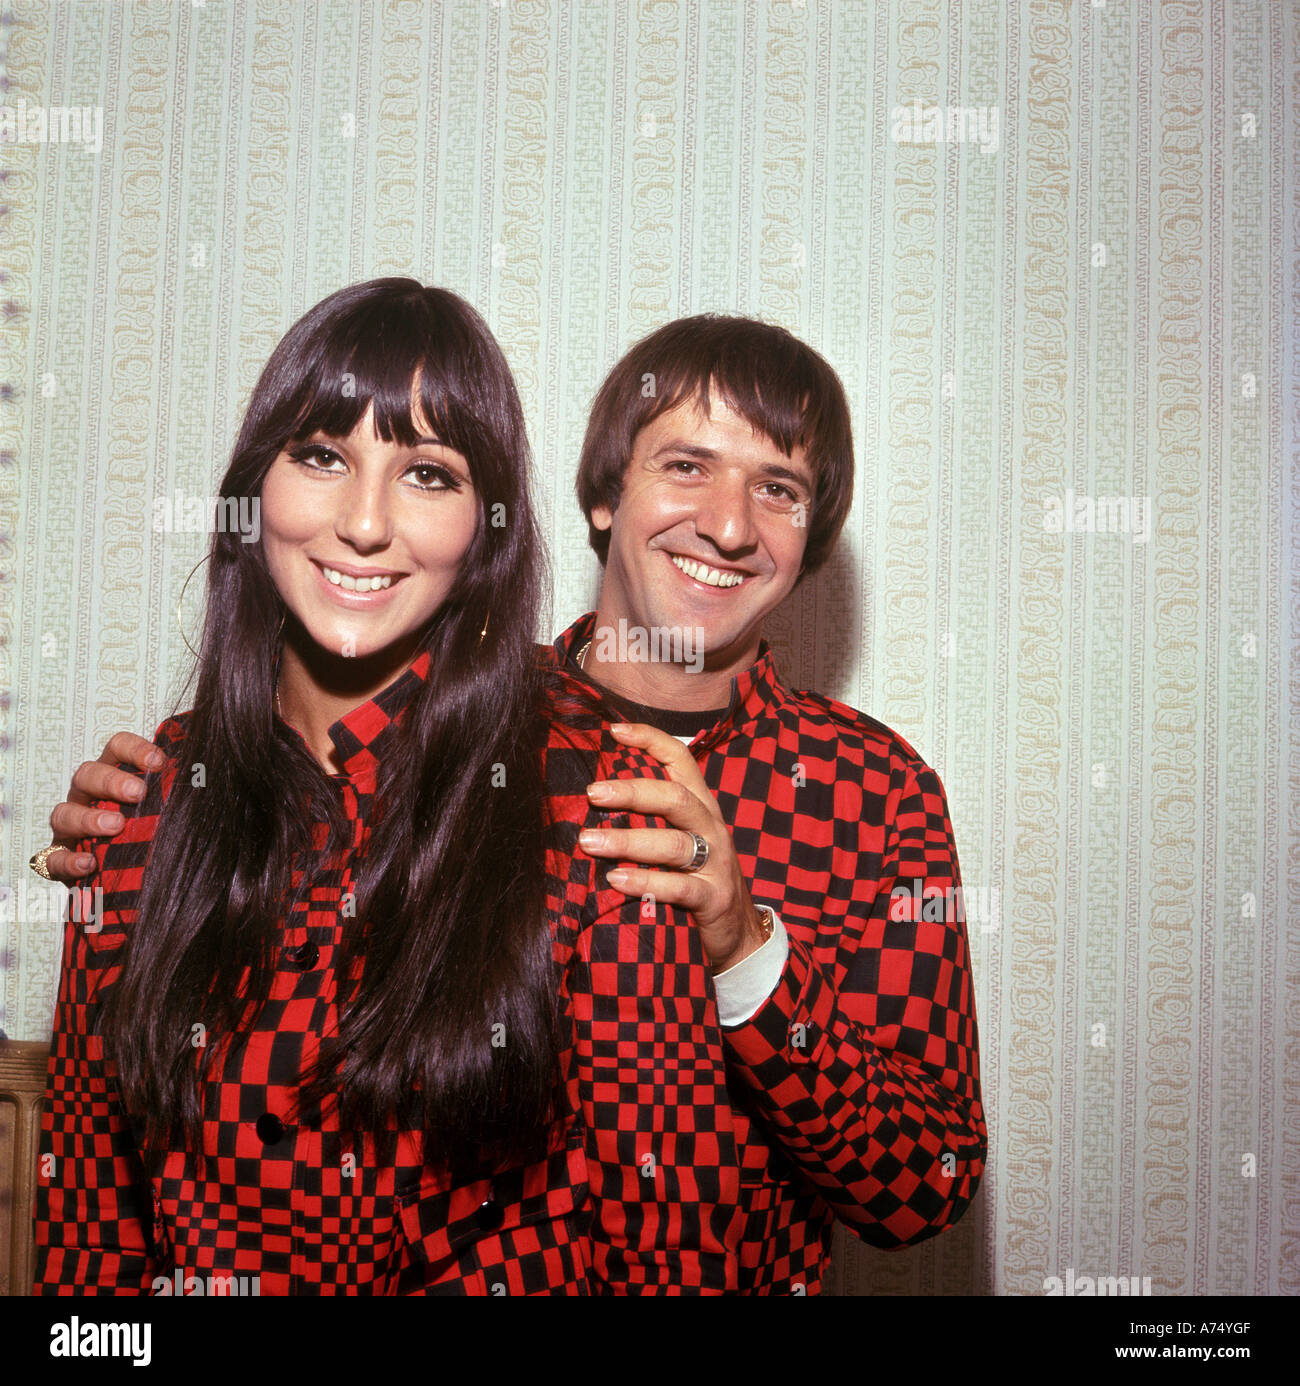 SONNY and CHER-nous musique duo Photo Stock